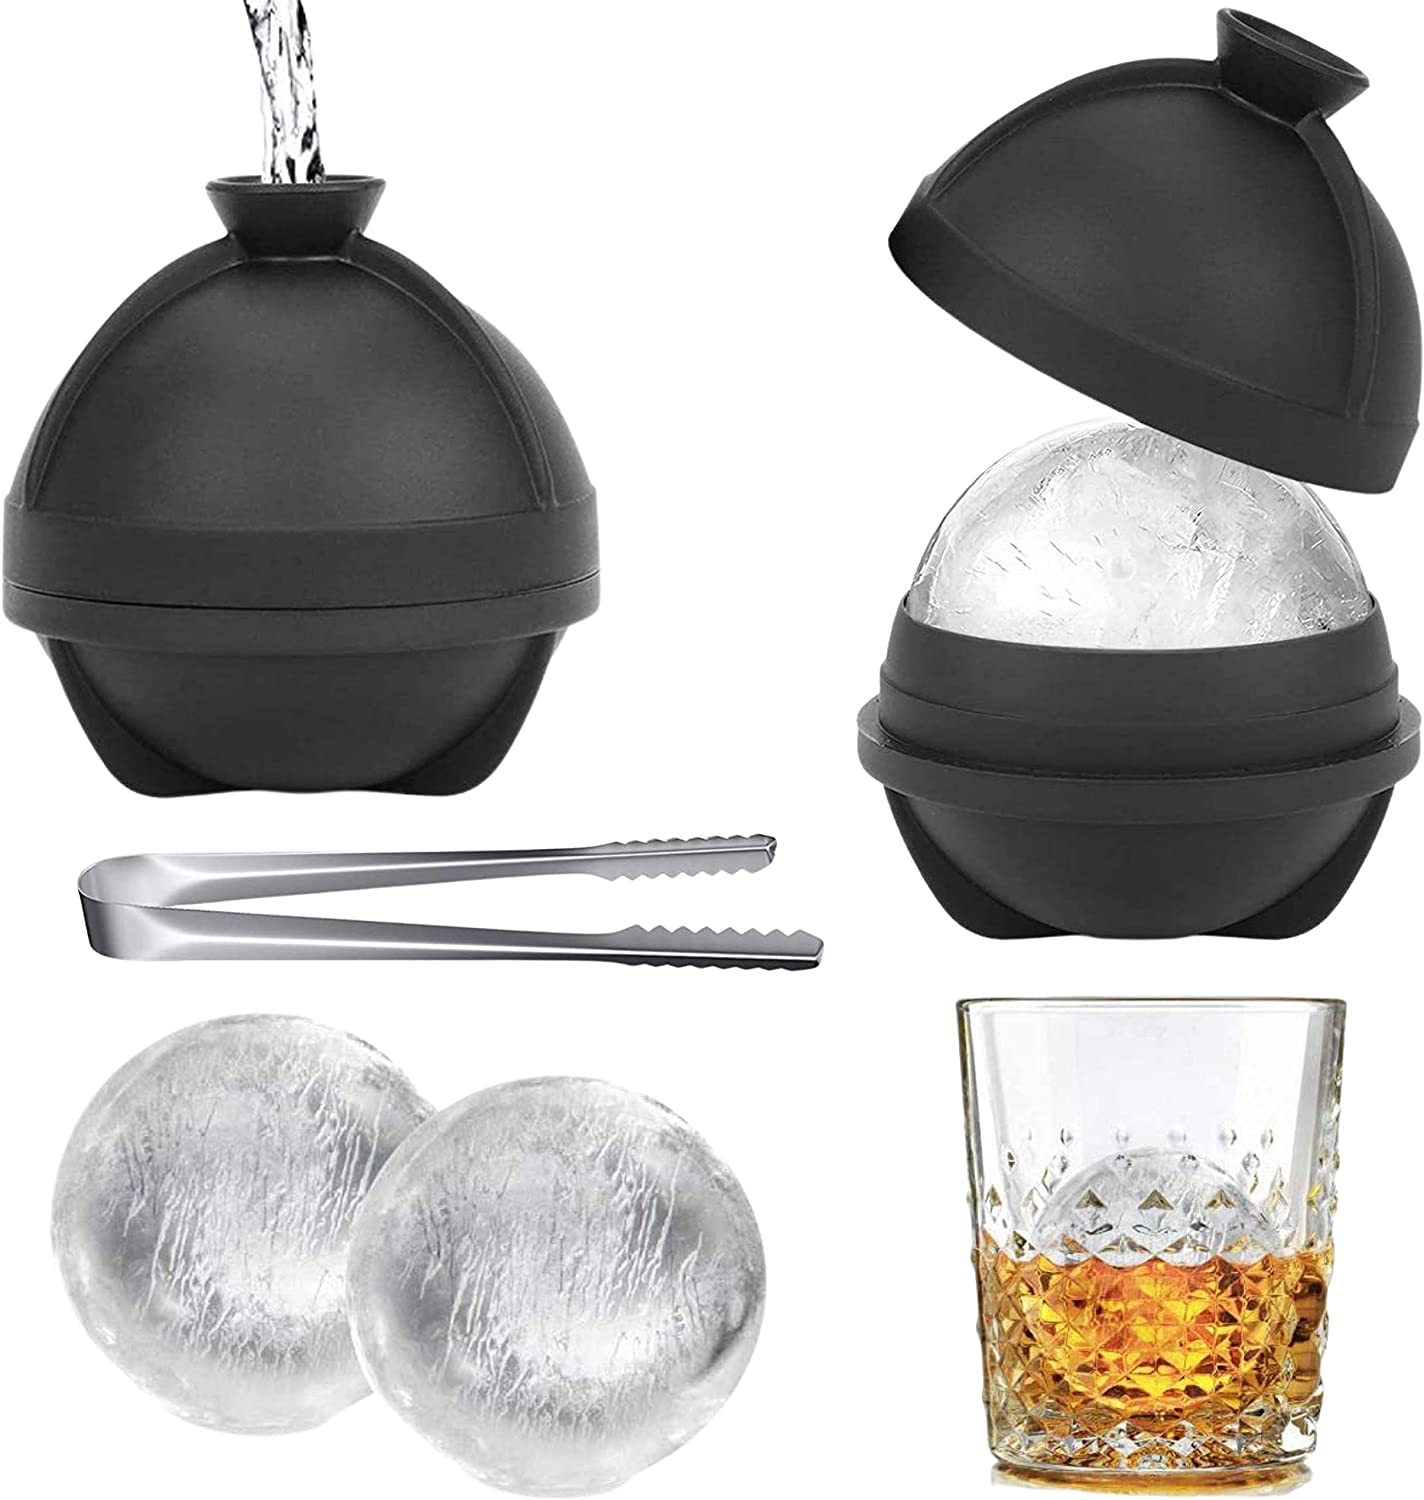 Orapink 2 Pack Ice Ball Molds - Silicone Sphere Ice Molds with Ice Tongs-Makes 2.5 Inch Large Ice Cube Trays for Whiskey & Cocktails Food Grade and BPA Free